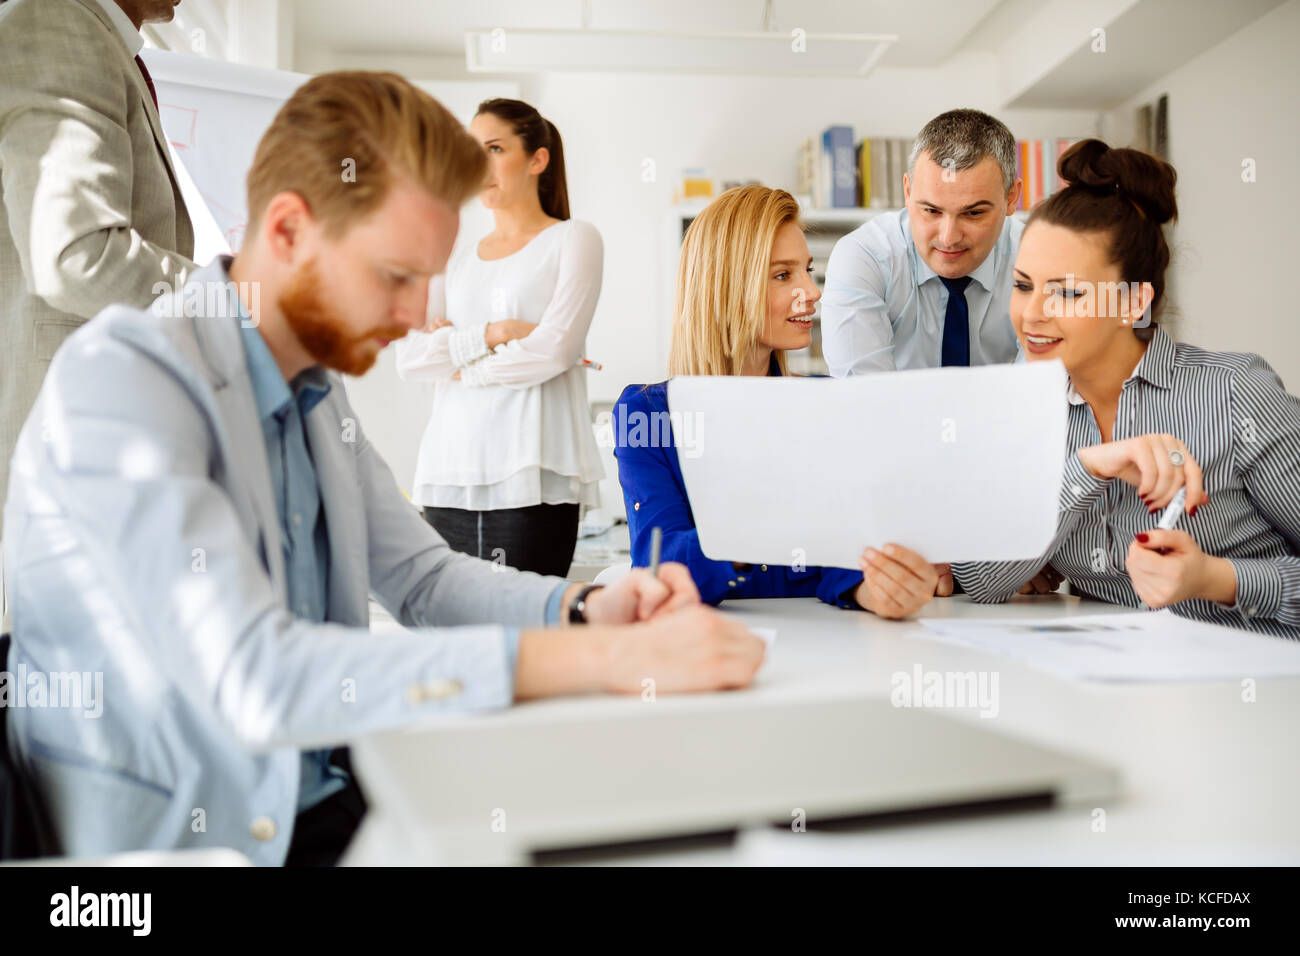 Business meeting and brainstorming - Stock Image